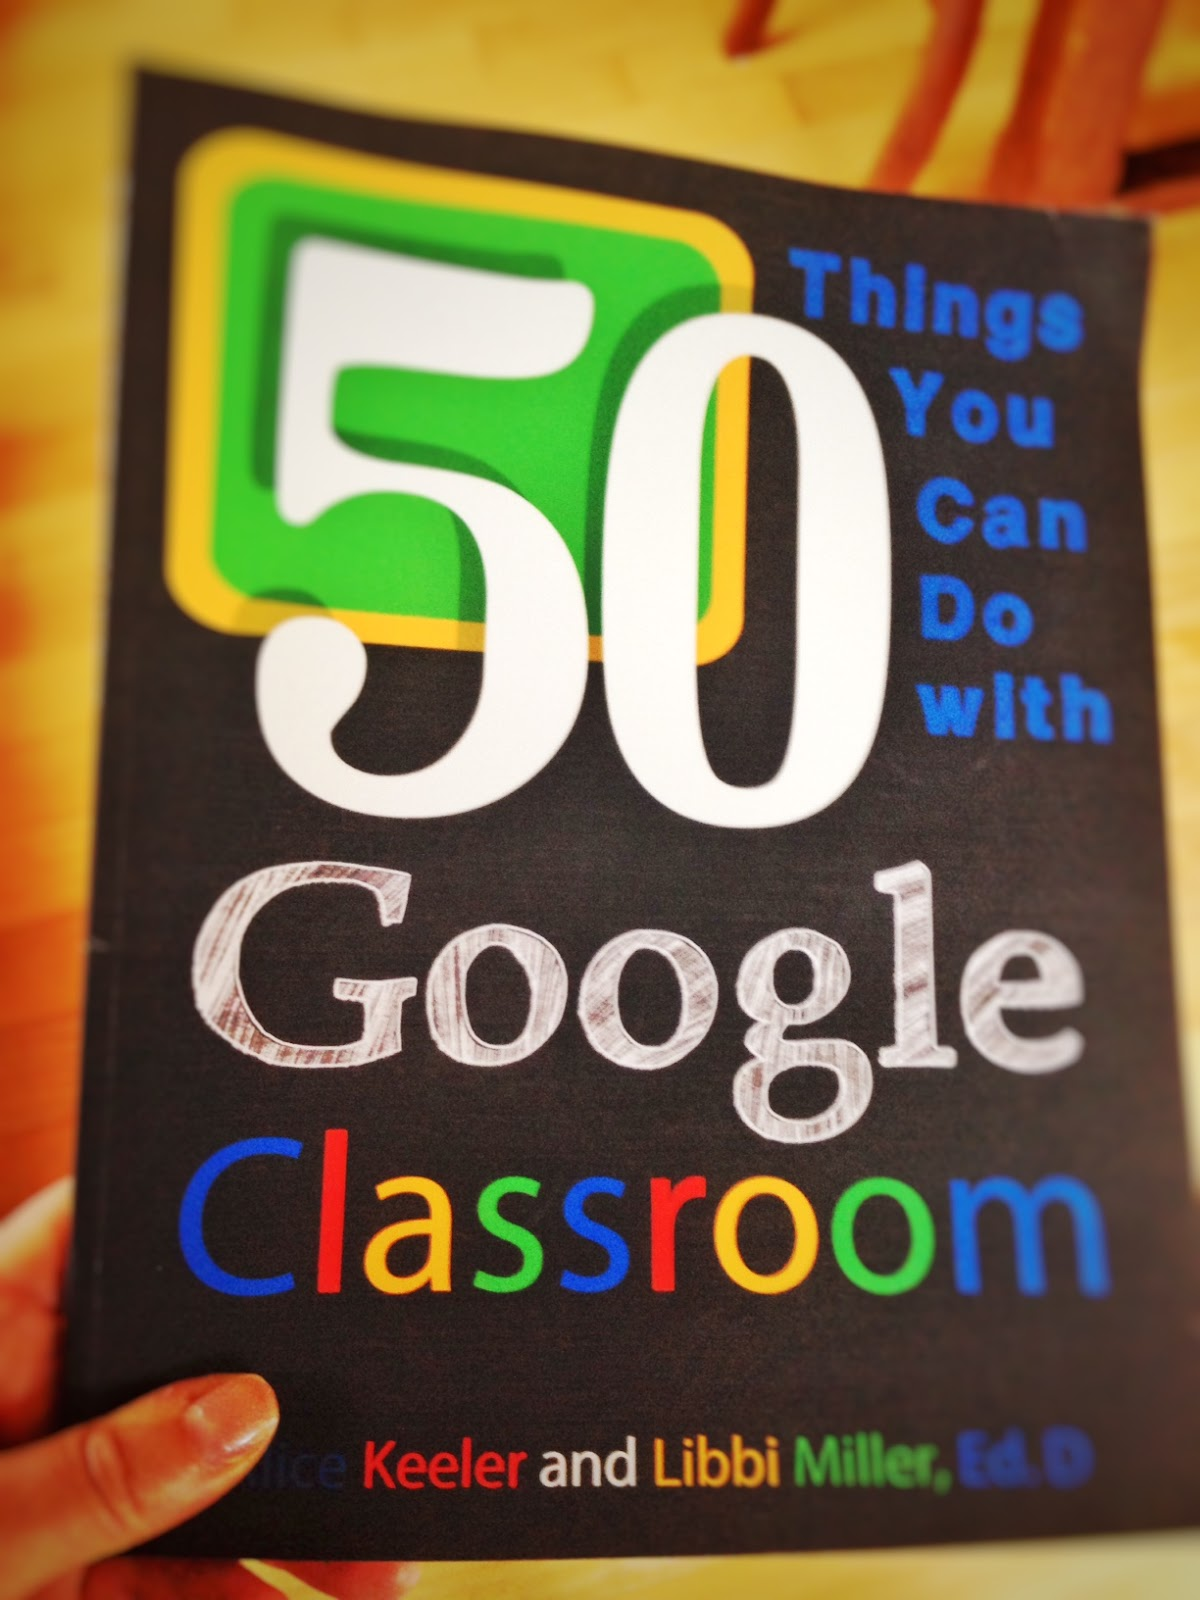 Review of 50 Things You Can Do With Google Classroom